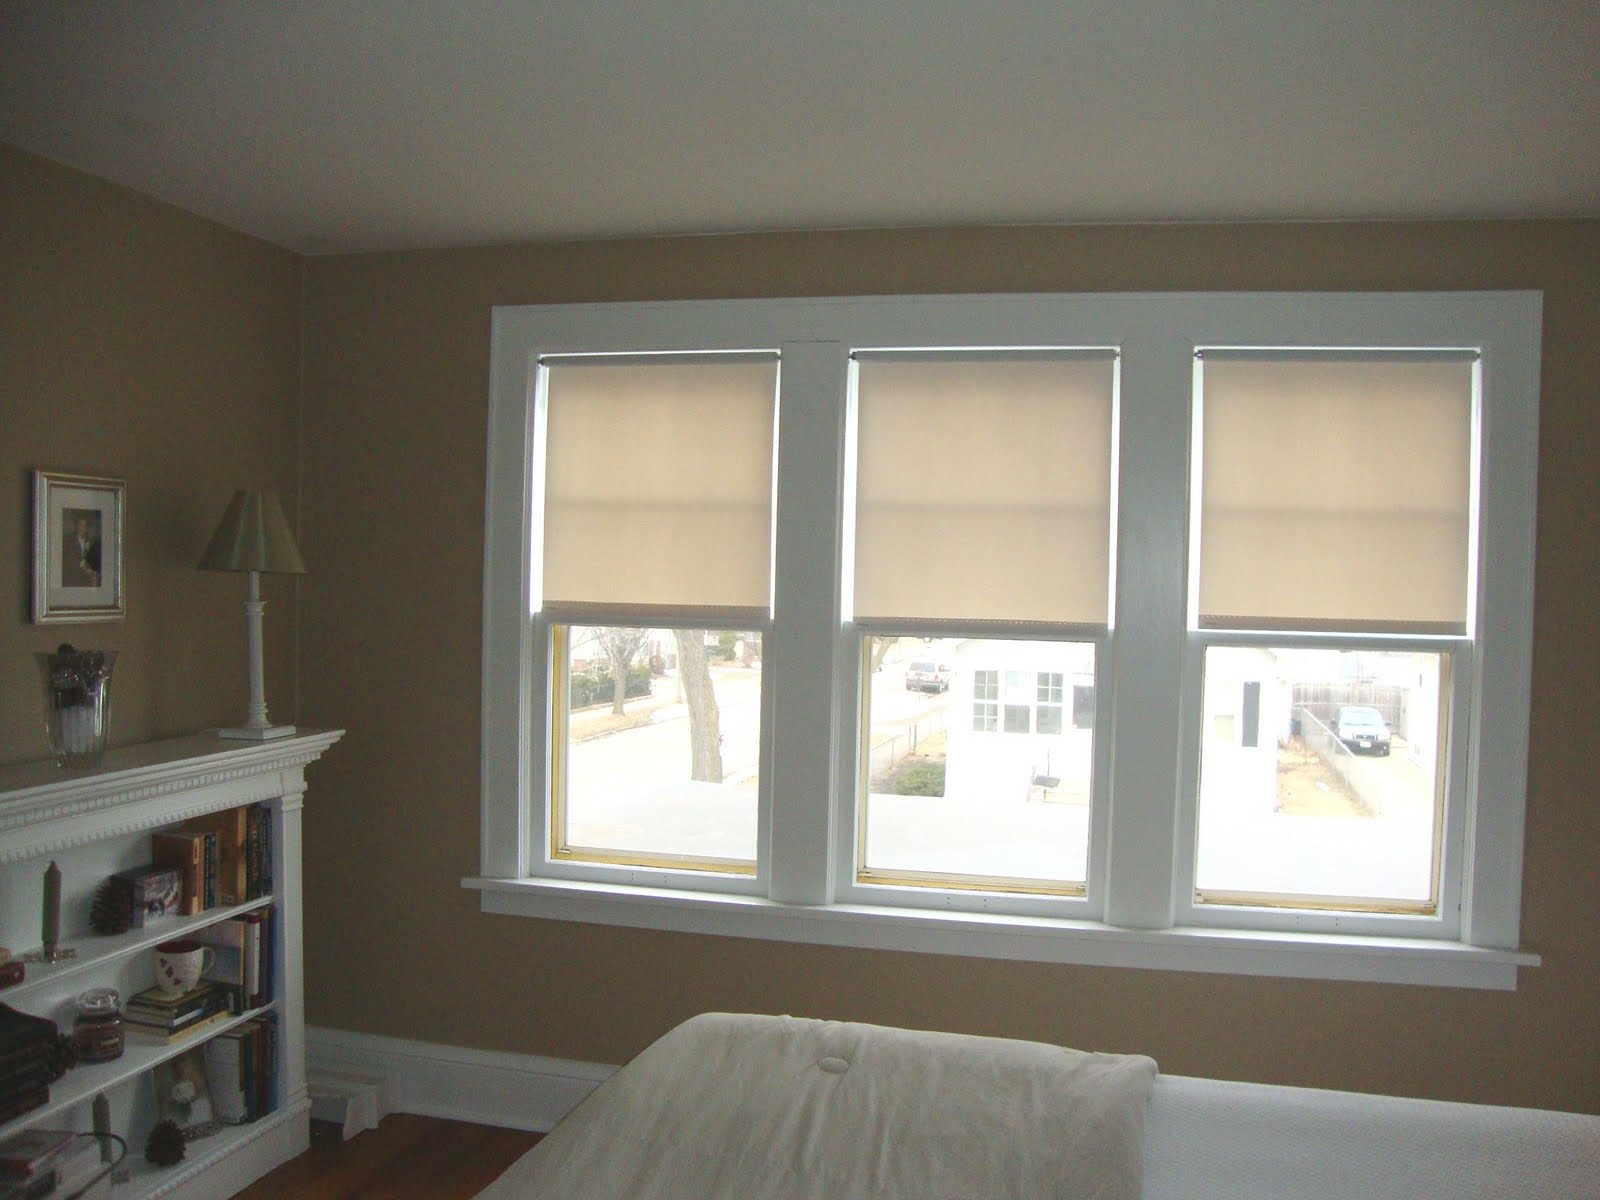 Bedroom window blinds ideas - Bedroom window treatments ideas ...